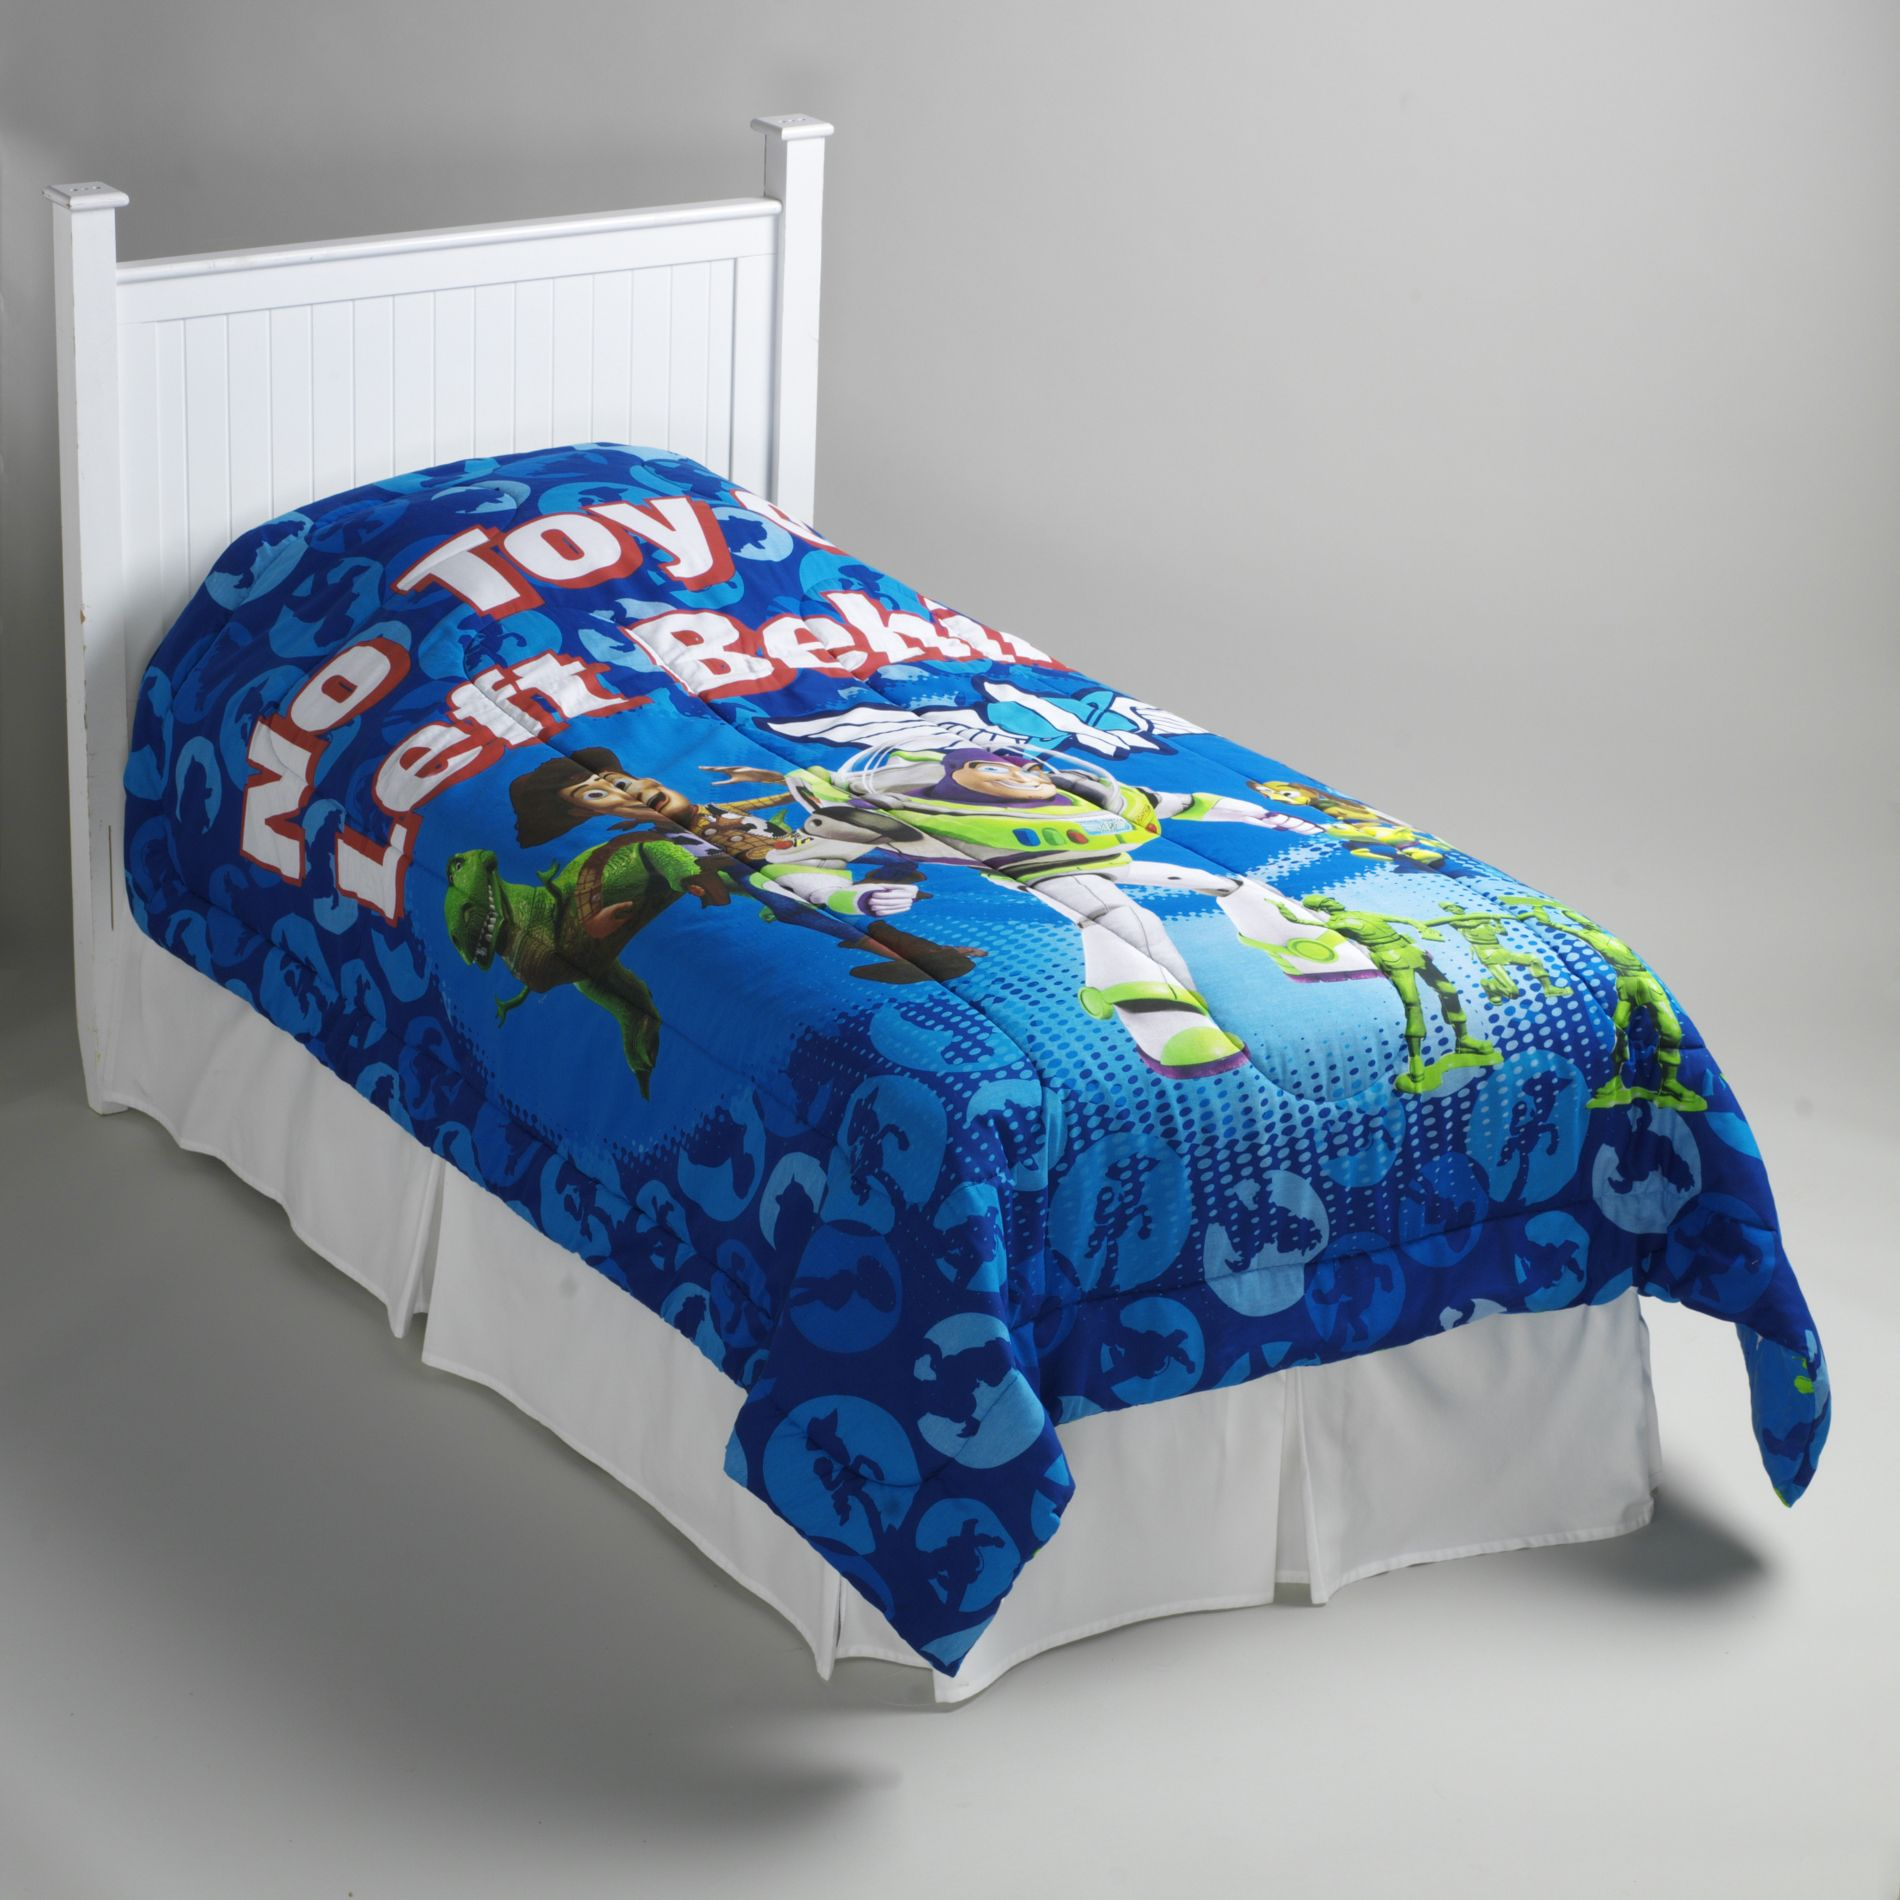 Disney Toy Story 3 Light Twin Full Comforter - Home Bed & Bath Bedding Sheets